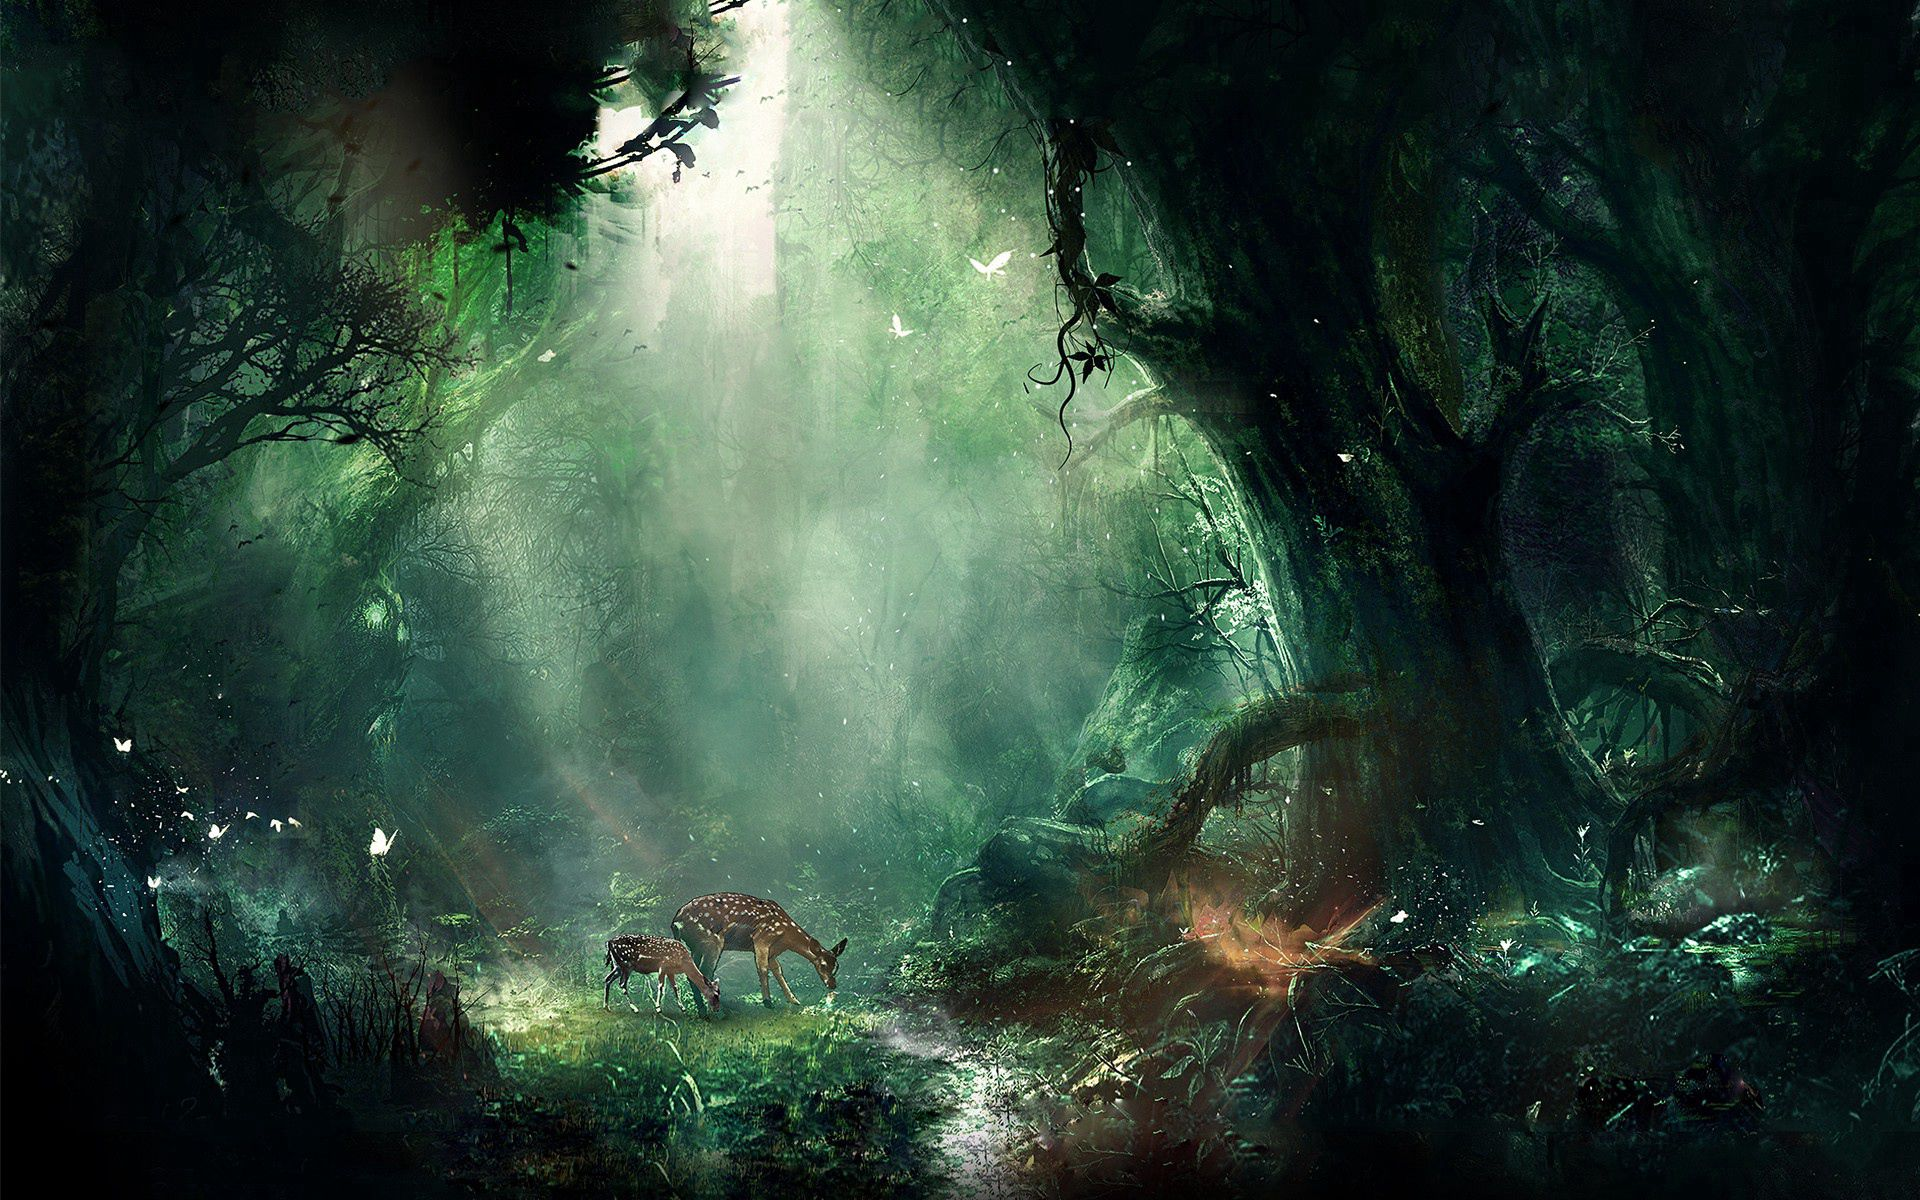 112953 download wallpaper Fantasy, Deers, Butterflies, Trees, Night, Jungle screensavers and pictures for free